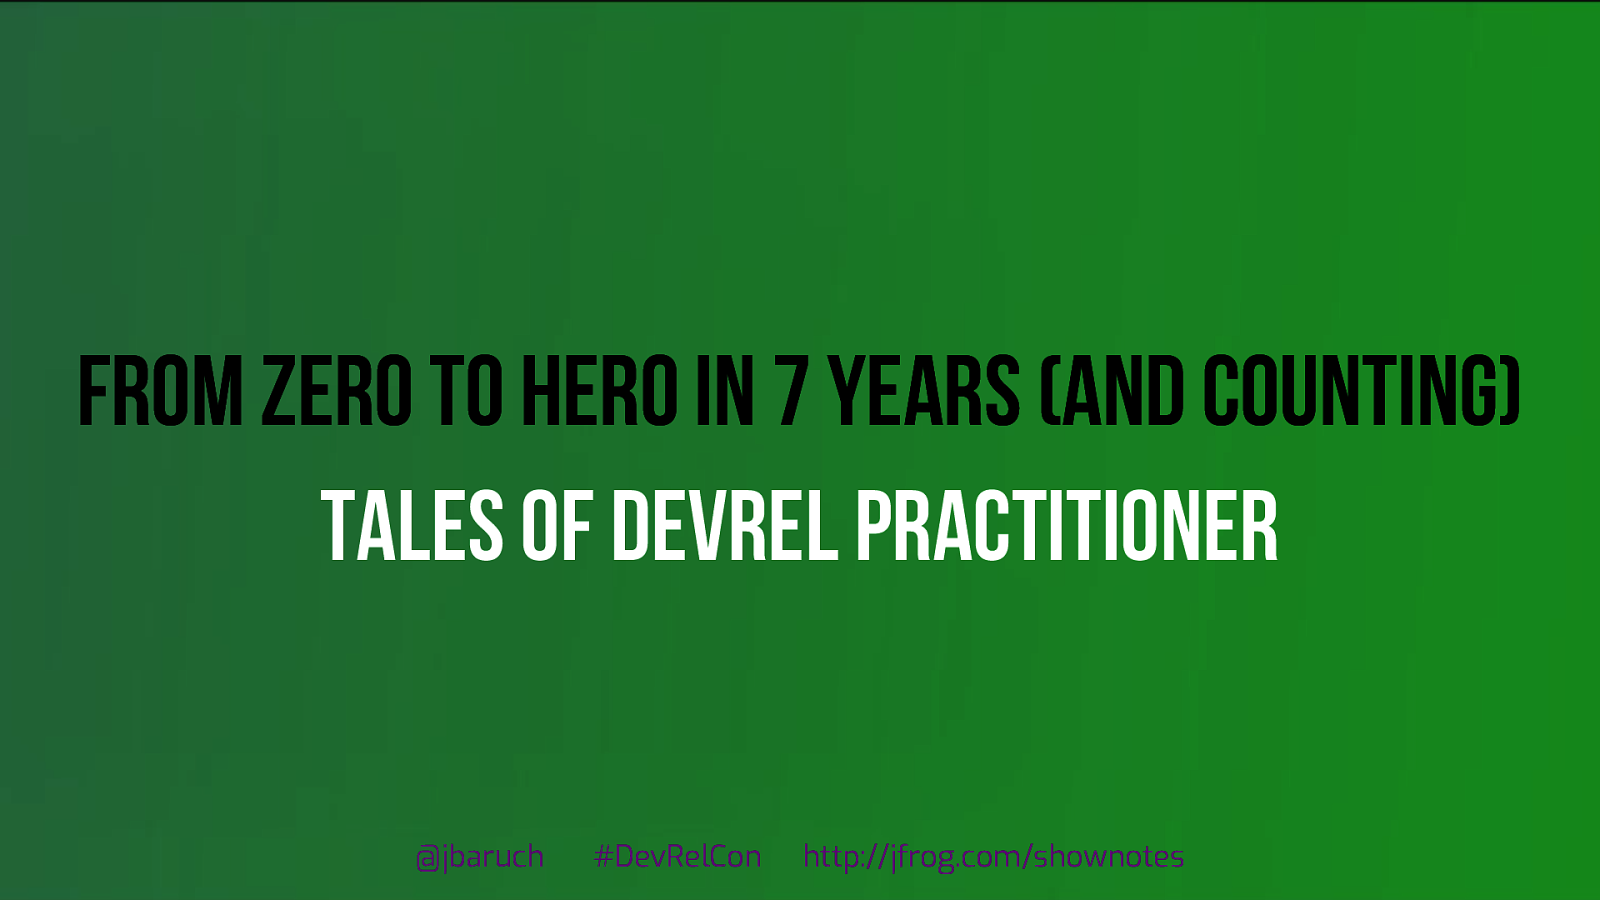 From Zero to Hero in 7 years (and counting). Tales of DevRel Practitioner.